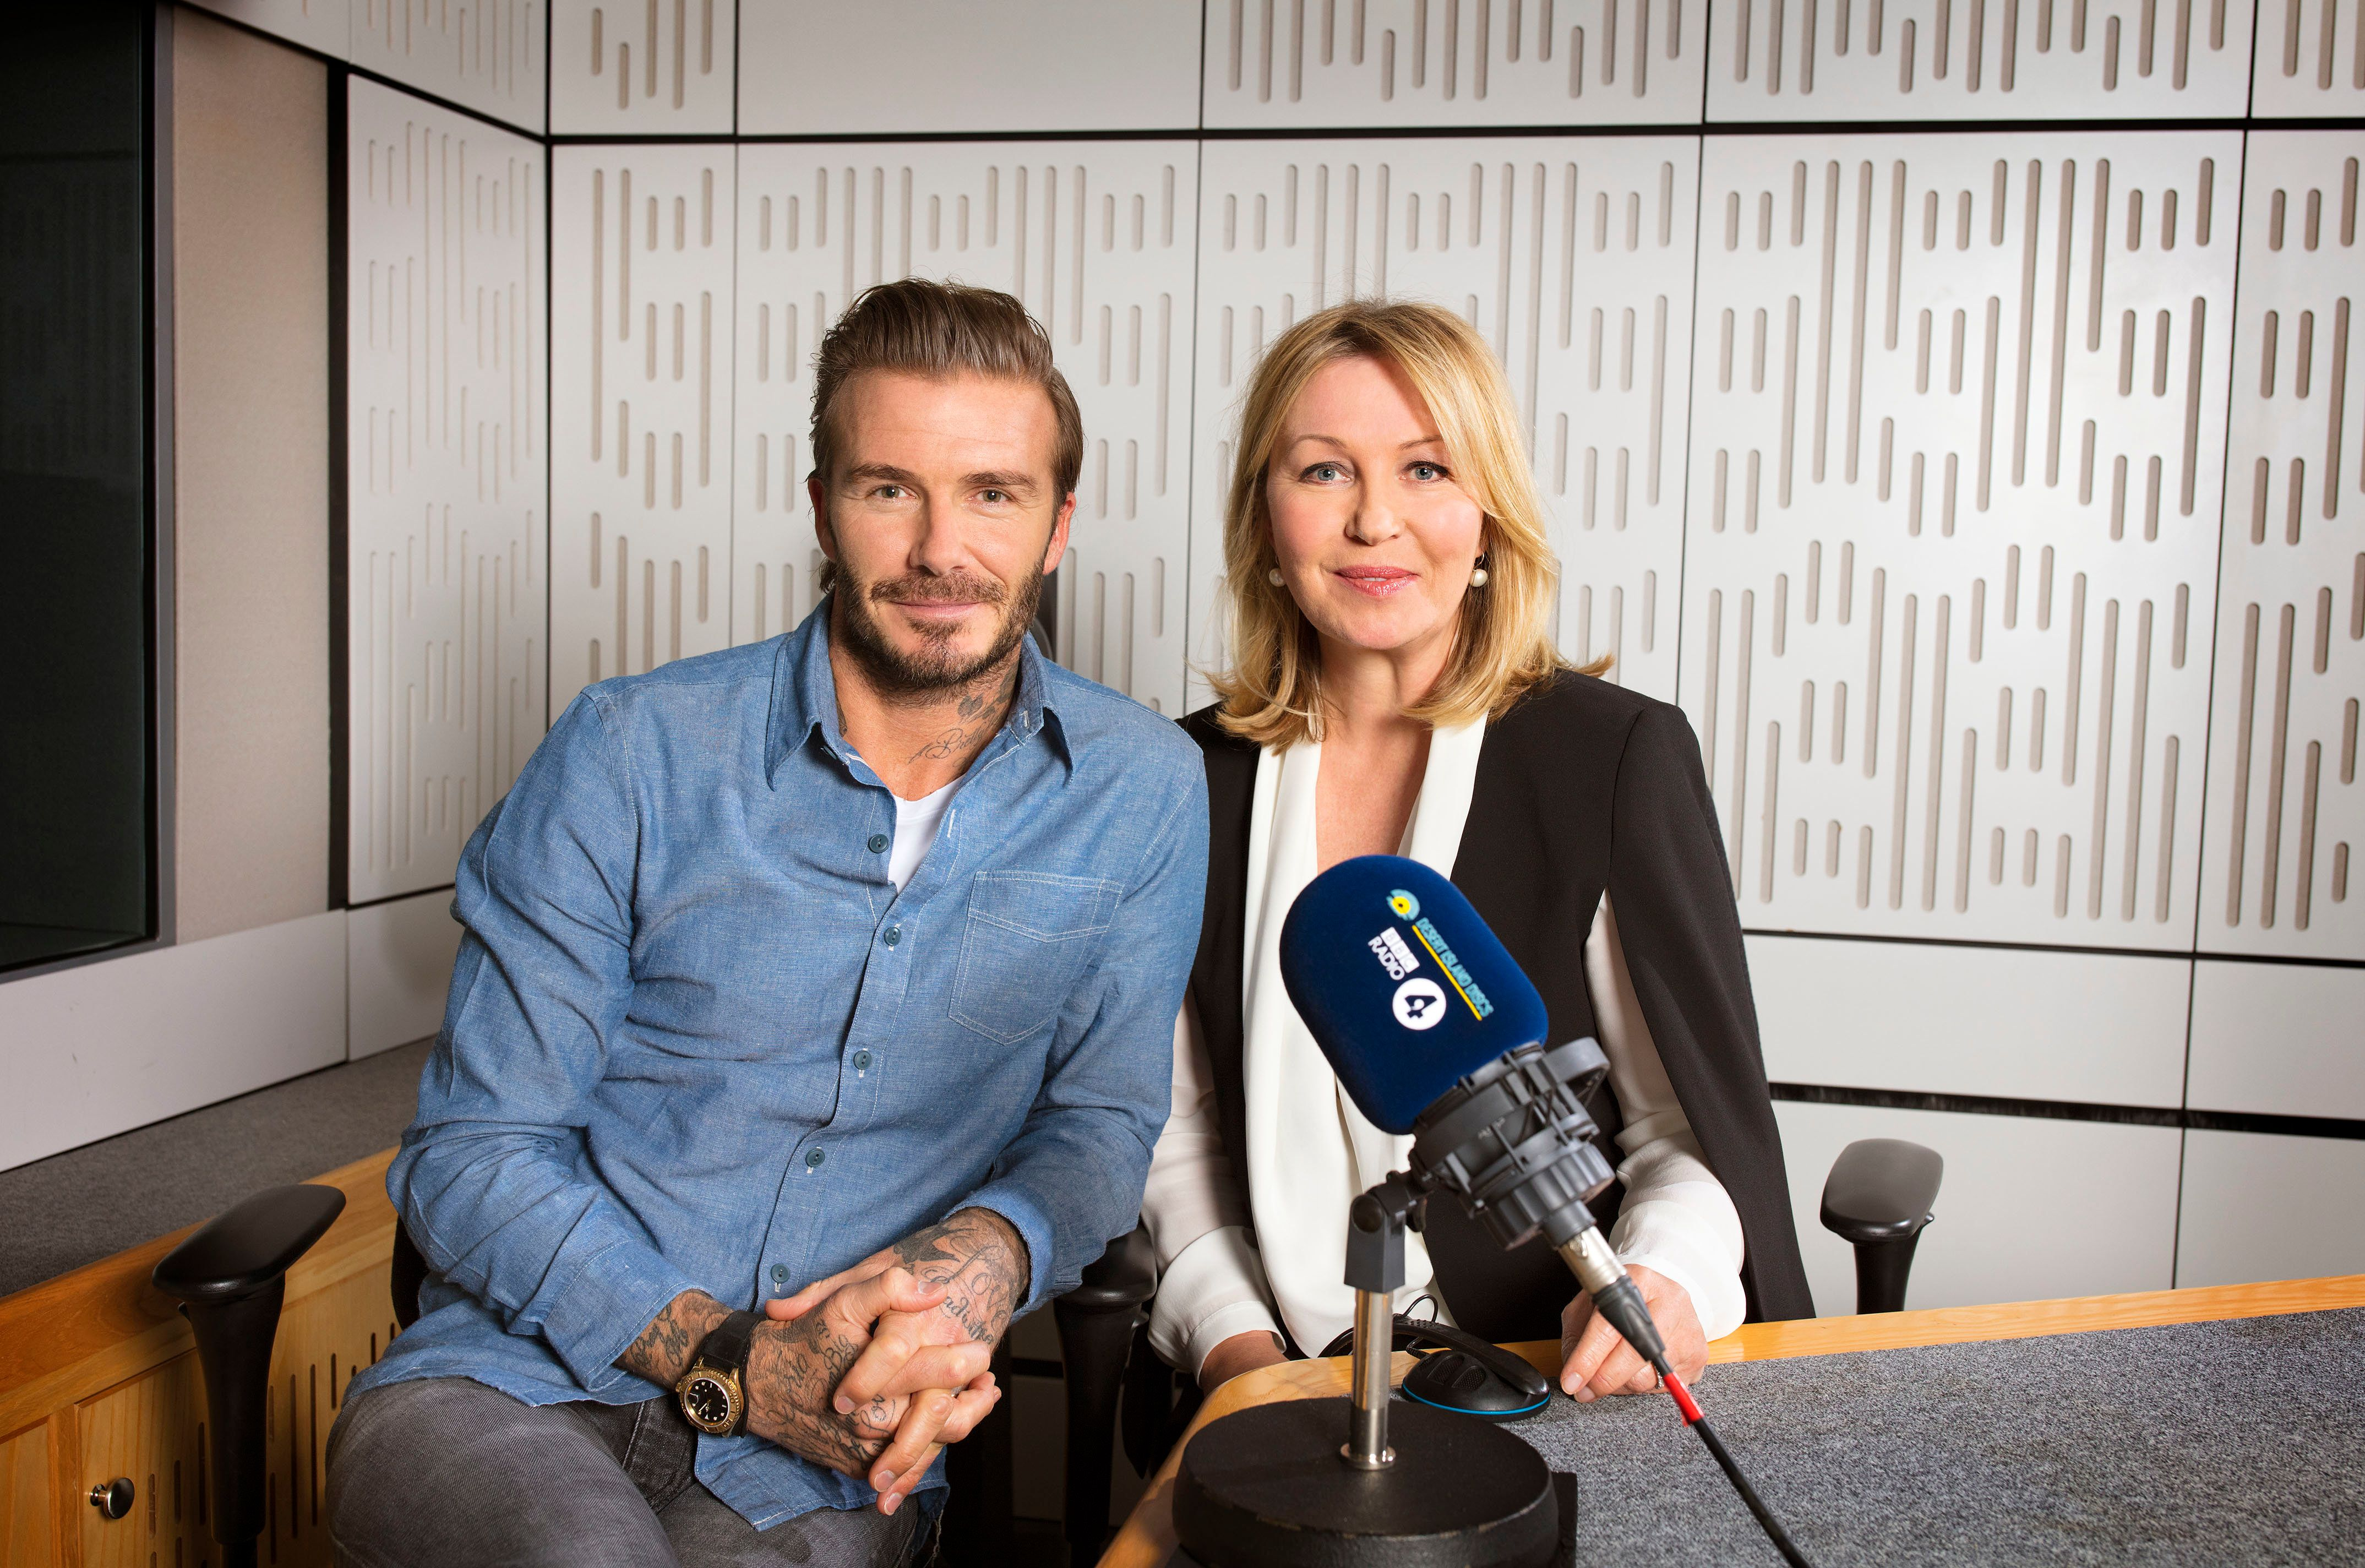 Desert Island Discs host Kirsty Young with her latest Castaway, David